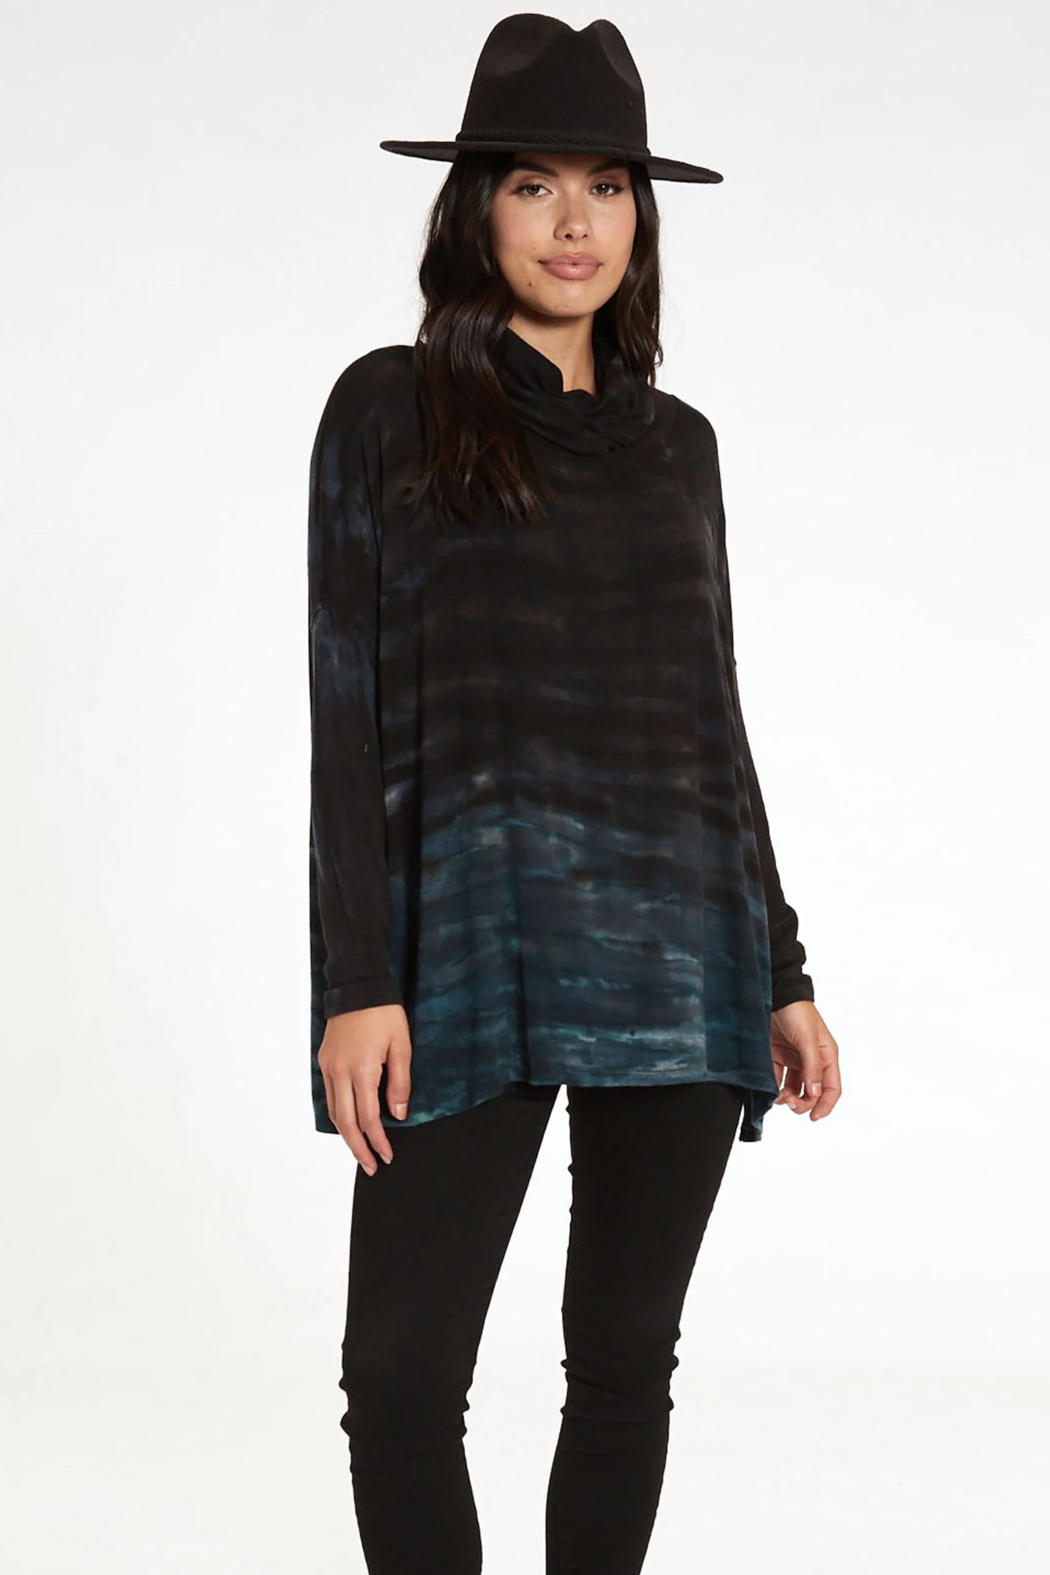 RIVER AND SKY Long Nights Oversized Ombre Poncho Sweater - Front Full Image